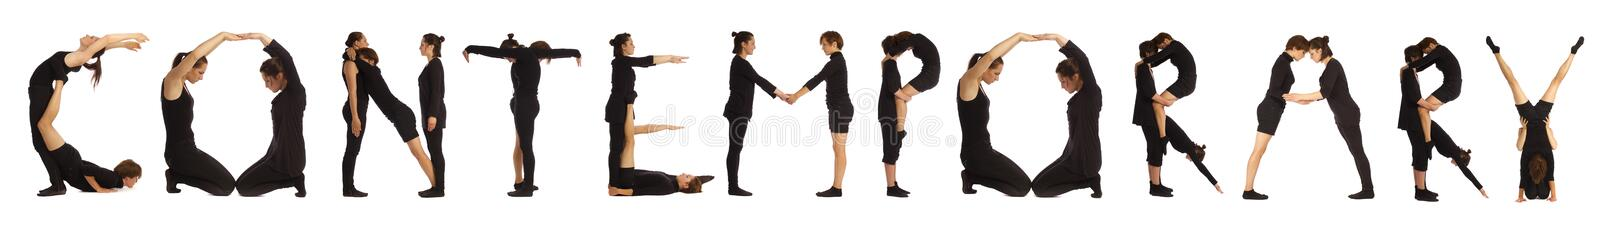 Black dressed people forming word CONTEMPORARY royalty free stock images